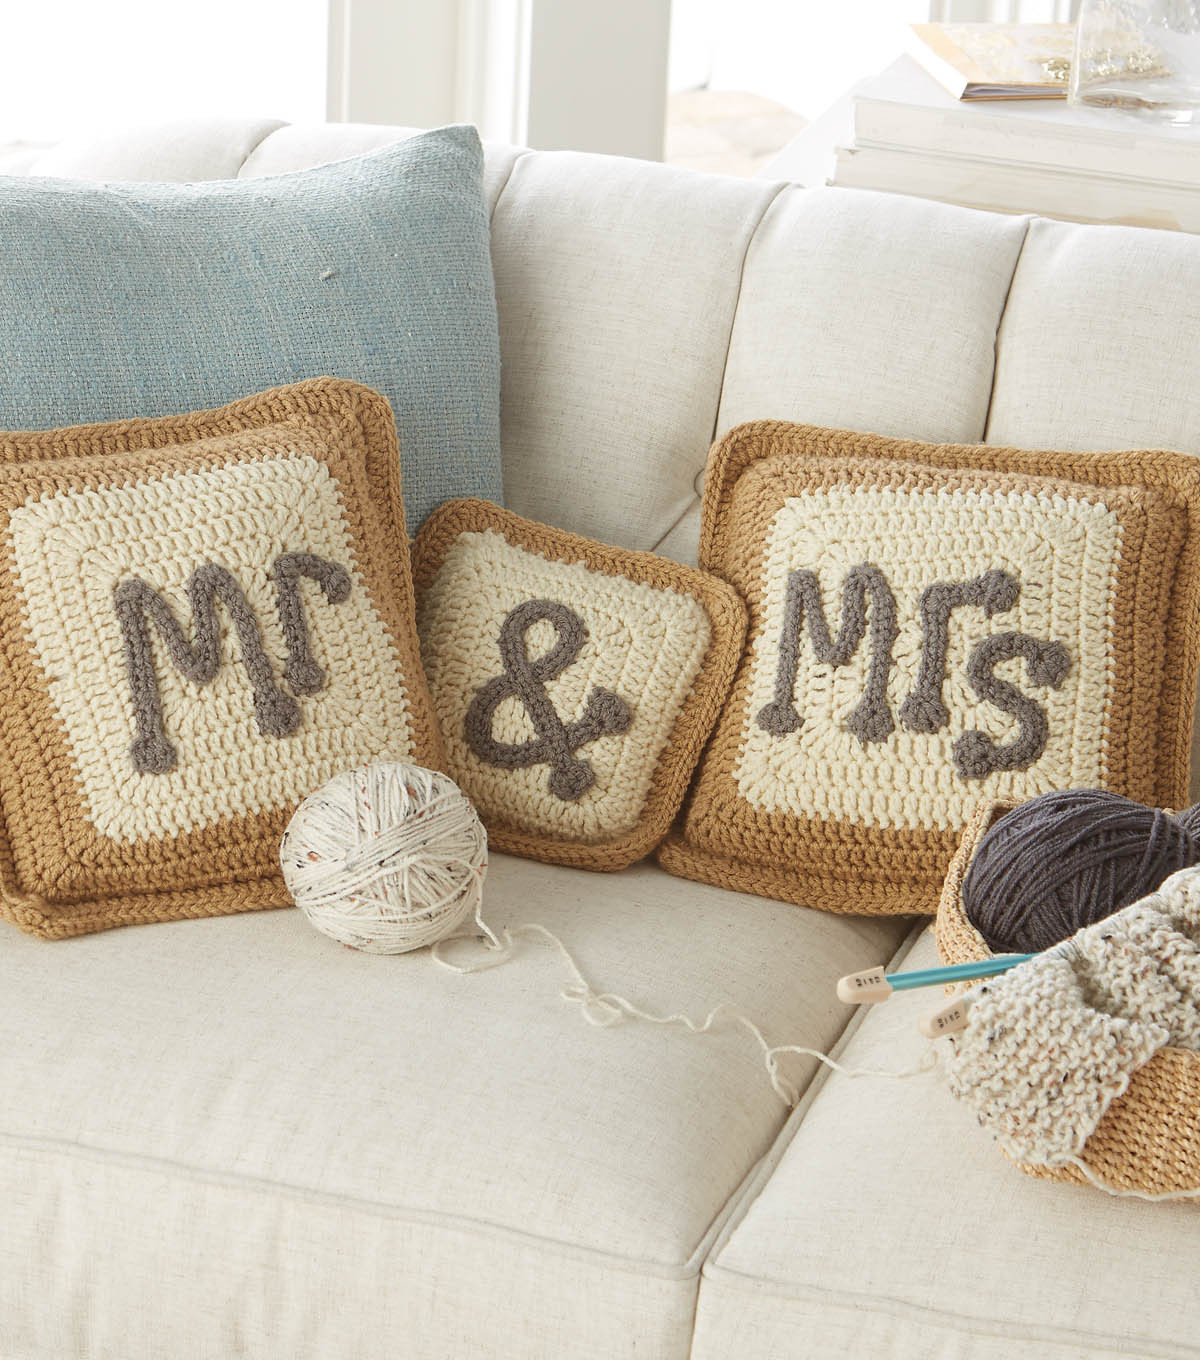 Crochet Wedding Gift Unique 15 Stunning Knitted and Crocheted Wedding Gift Ideas Of Incredible 46 Images Crochet Wedding Gift